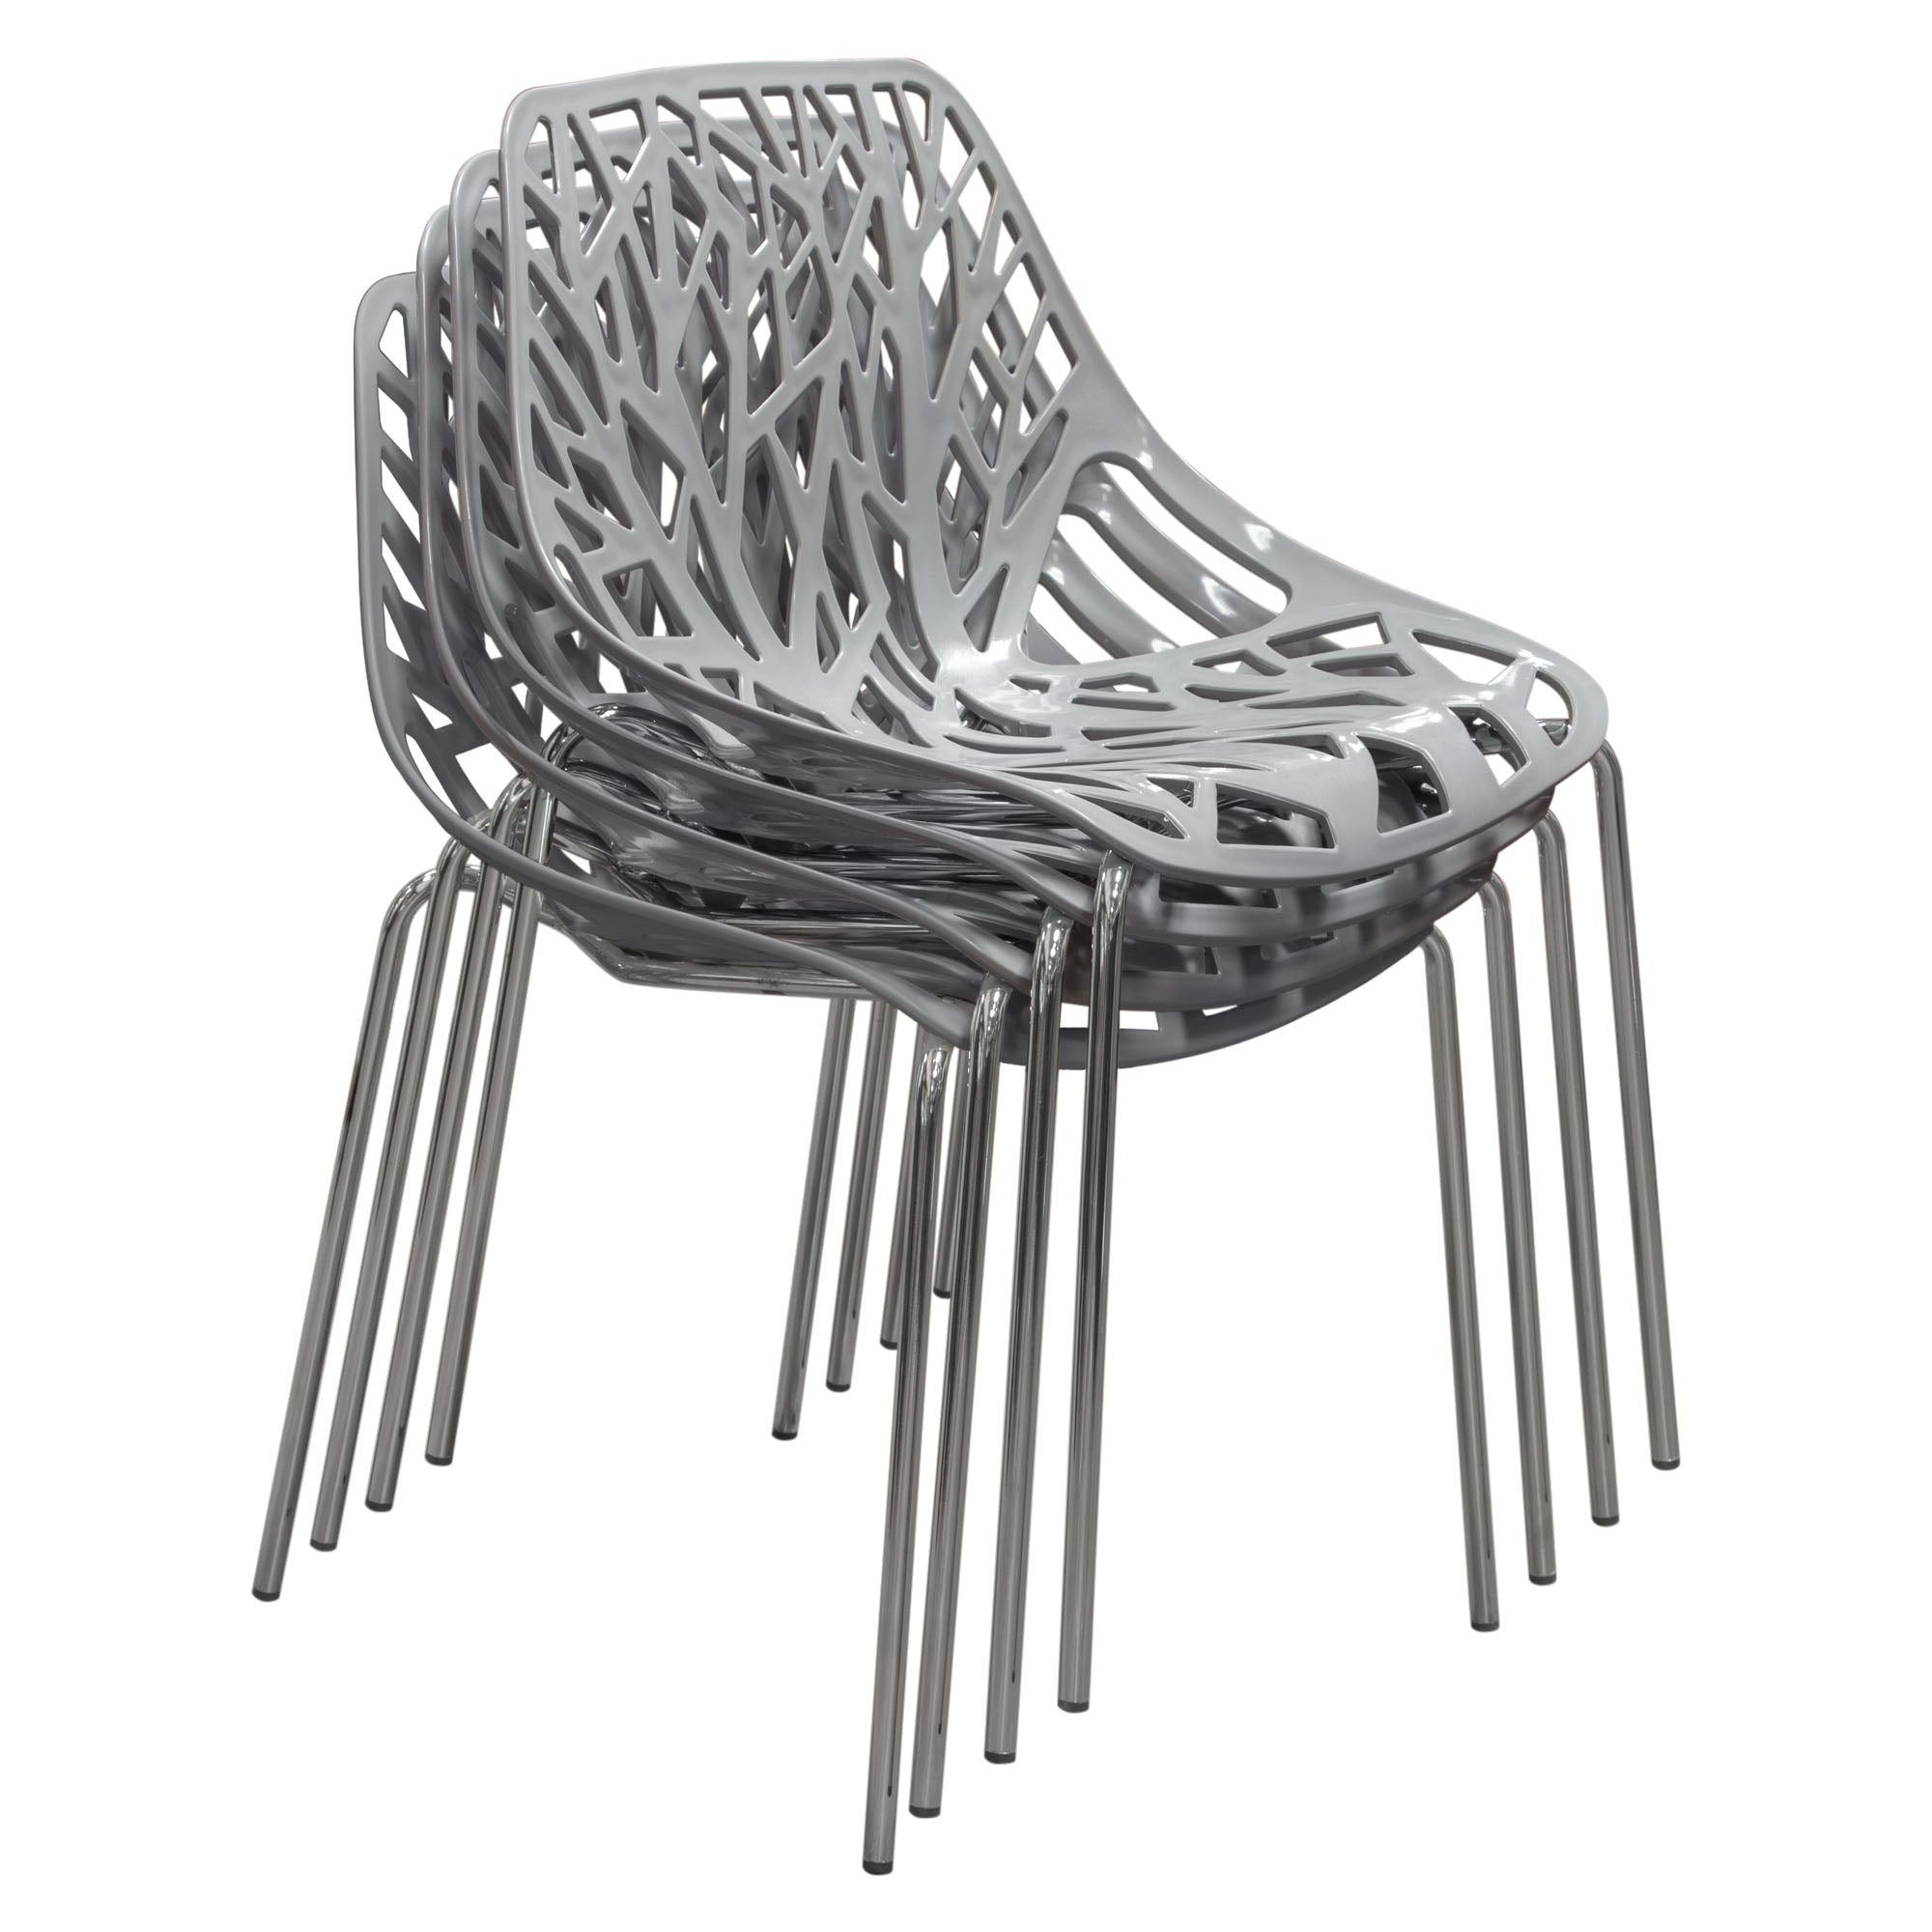 ... Diamond Sofa PEPPERDCGR4PK Pepper 4 Pack Accent Chairs In Grey Laser Cut  Polypropylene (PP ...